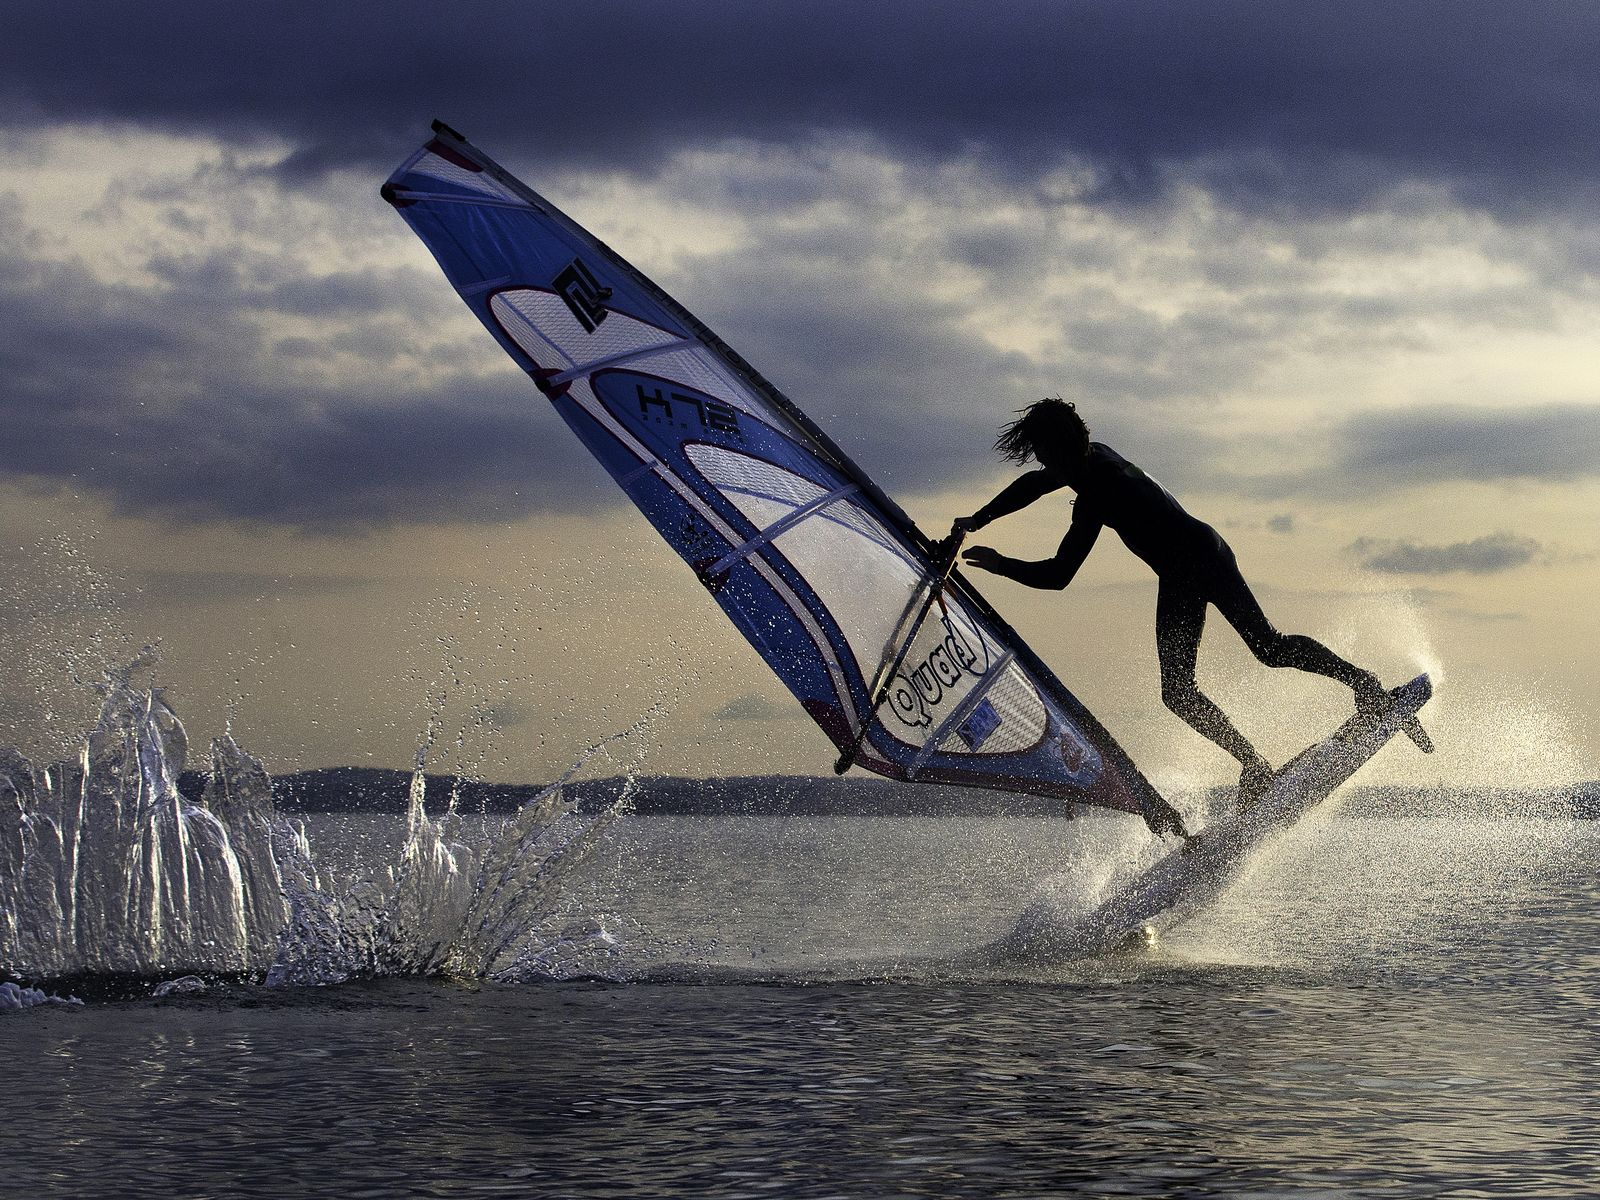 National Watersports Festival Photo by Christophe Ponchont